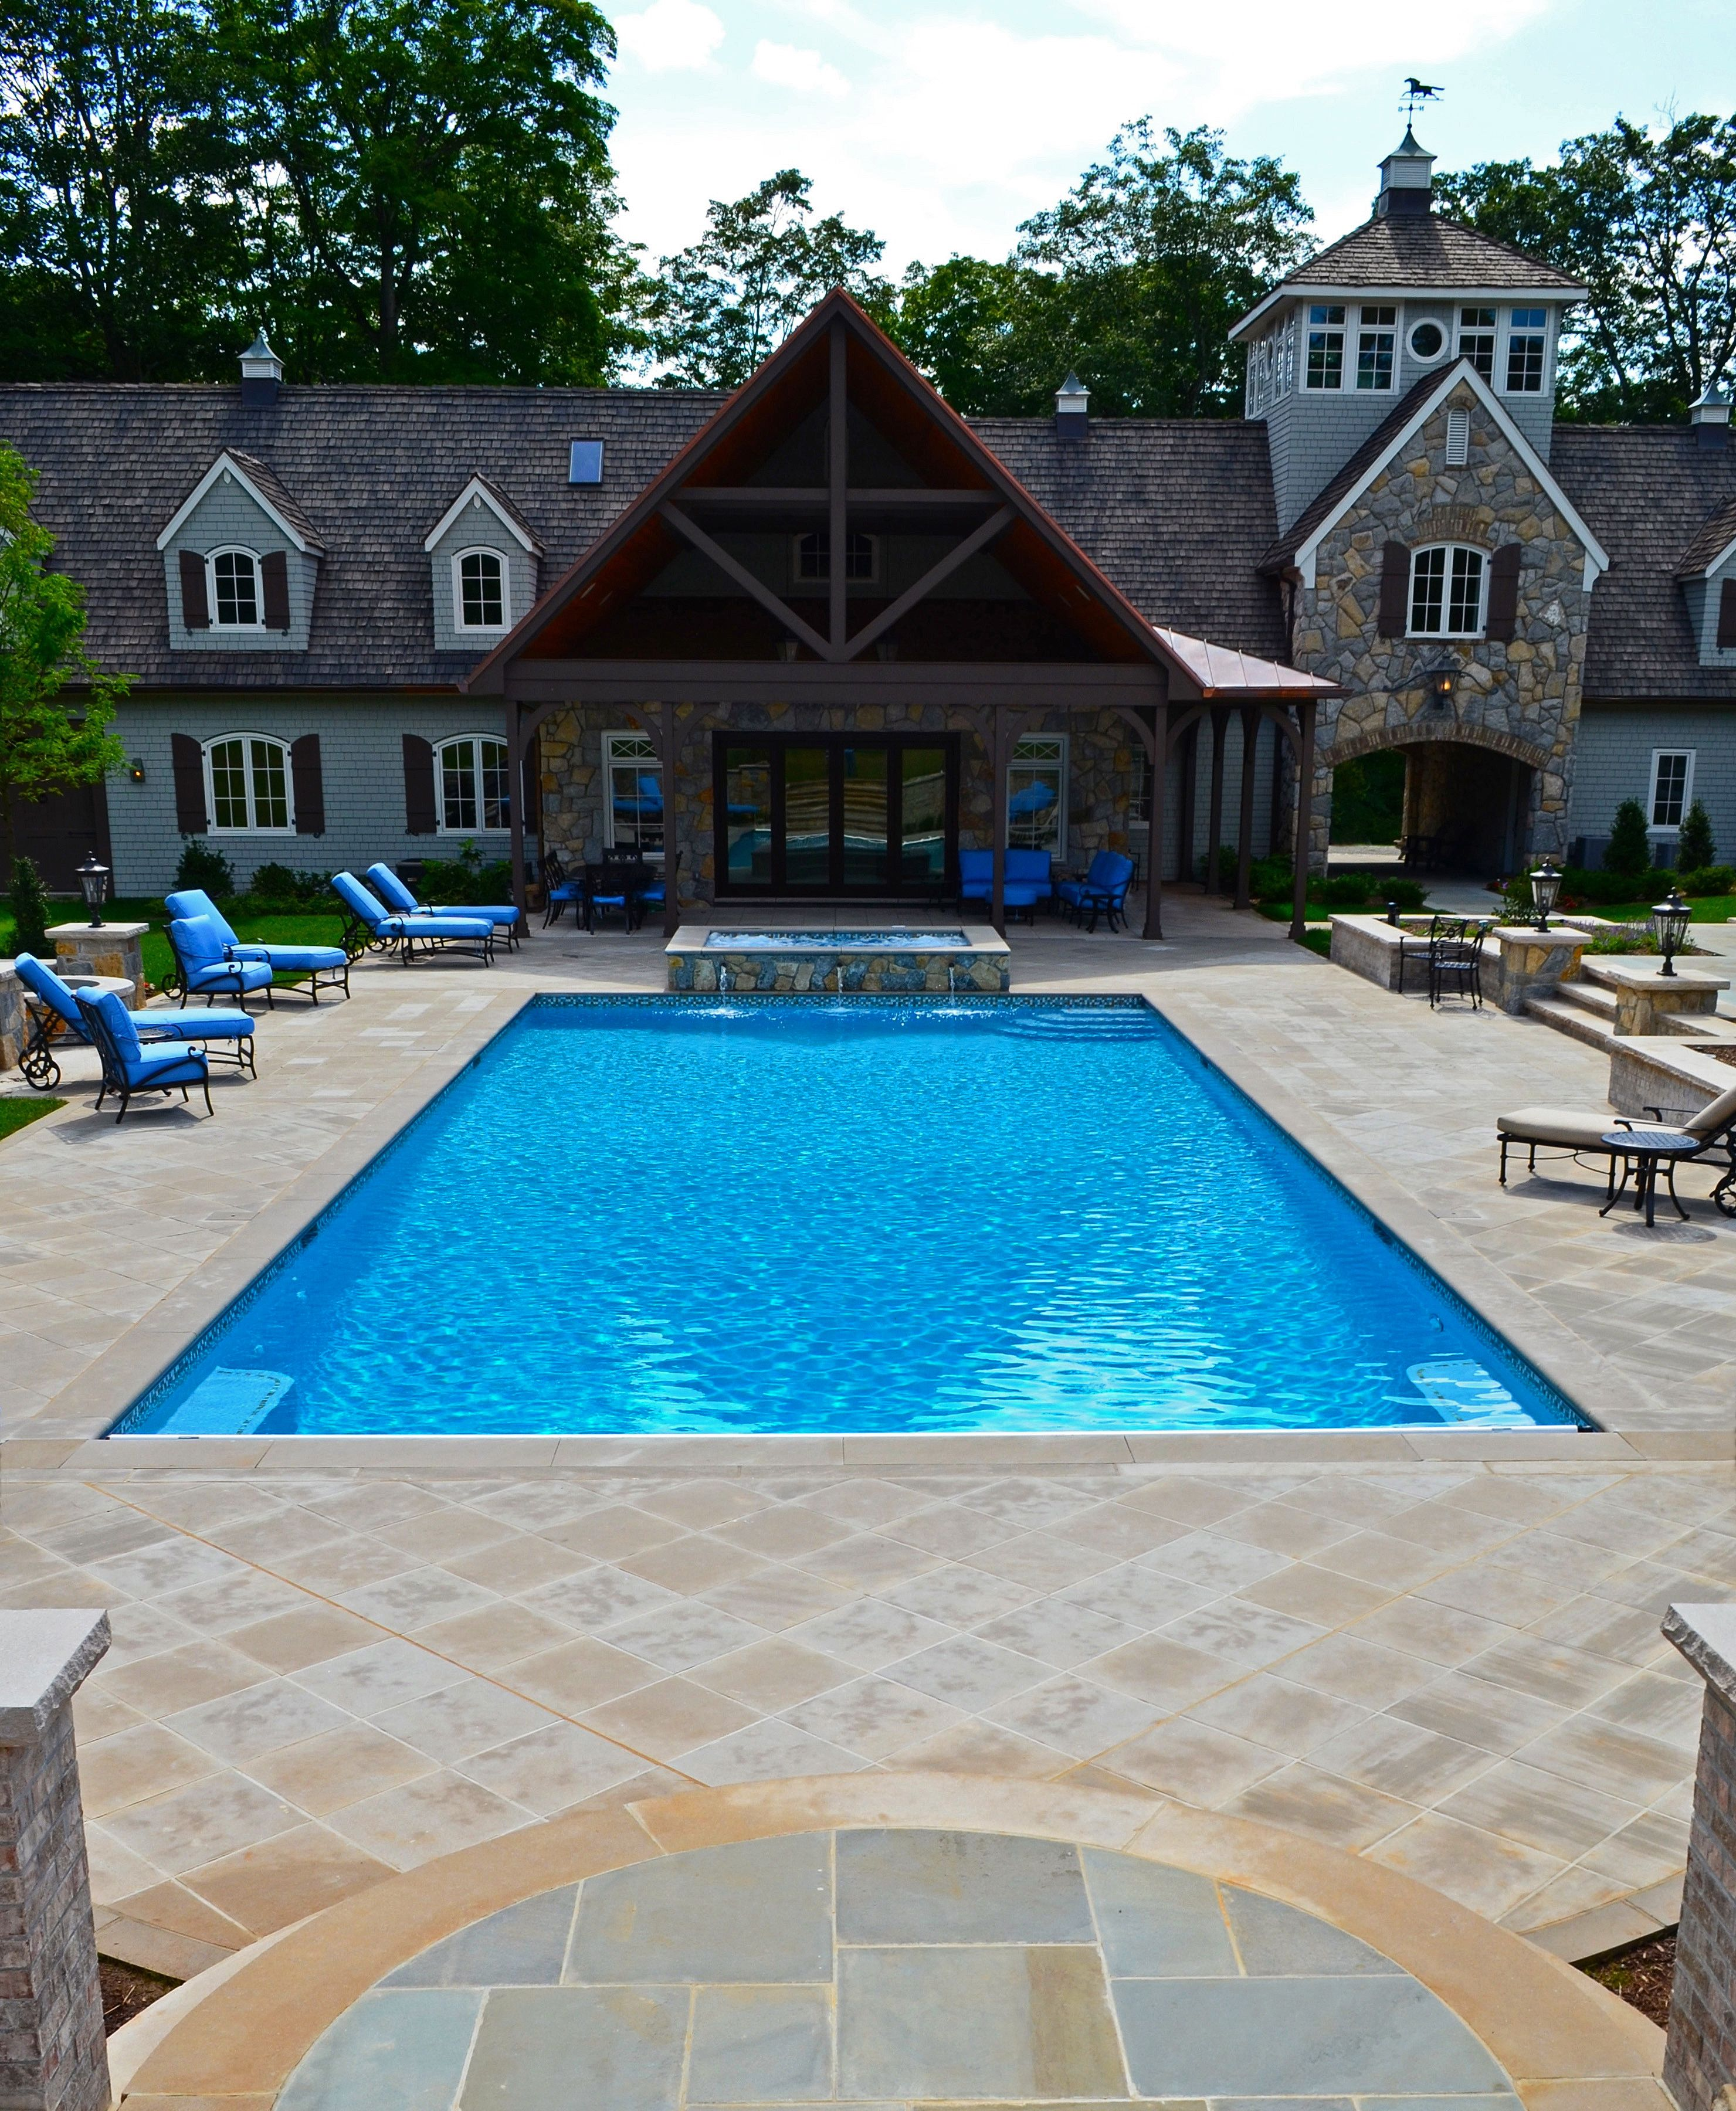 12 Examples Of Luxury Swimming Pool Design 2019 Pool Patio Designs Rectangular Swimming Pools Swimming Pool Landscaping